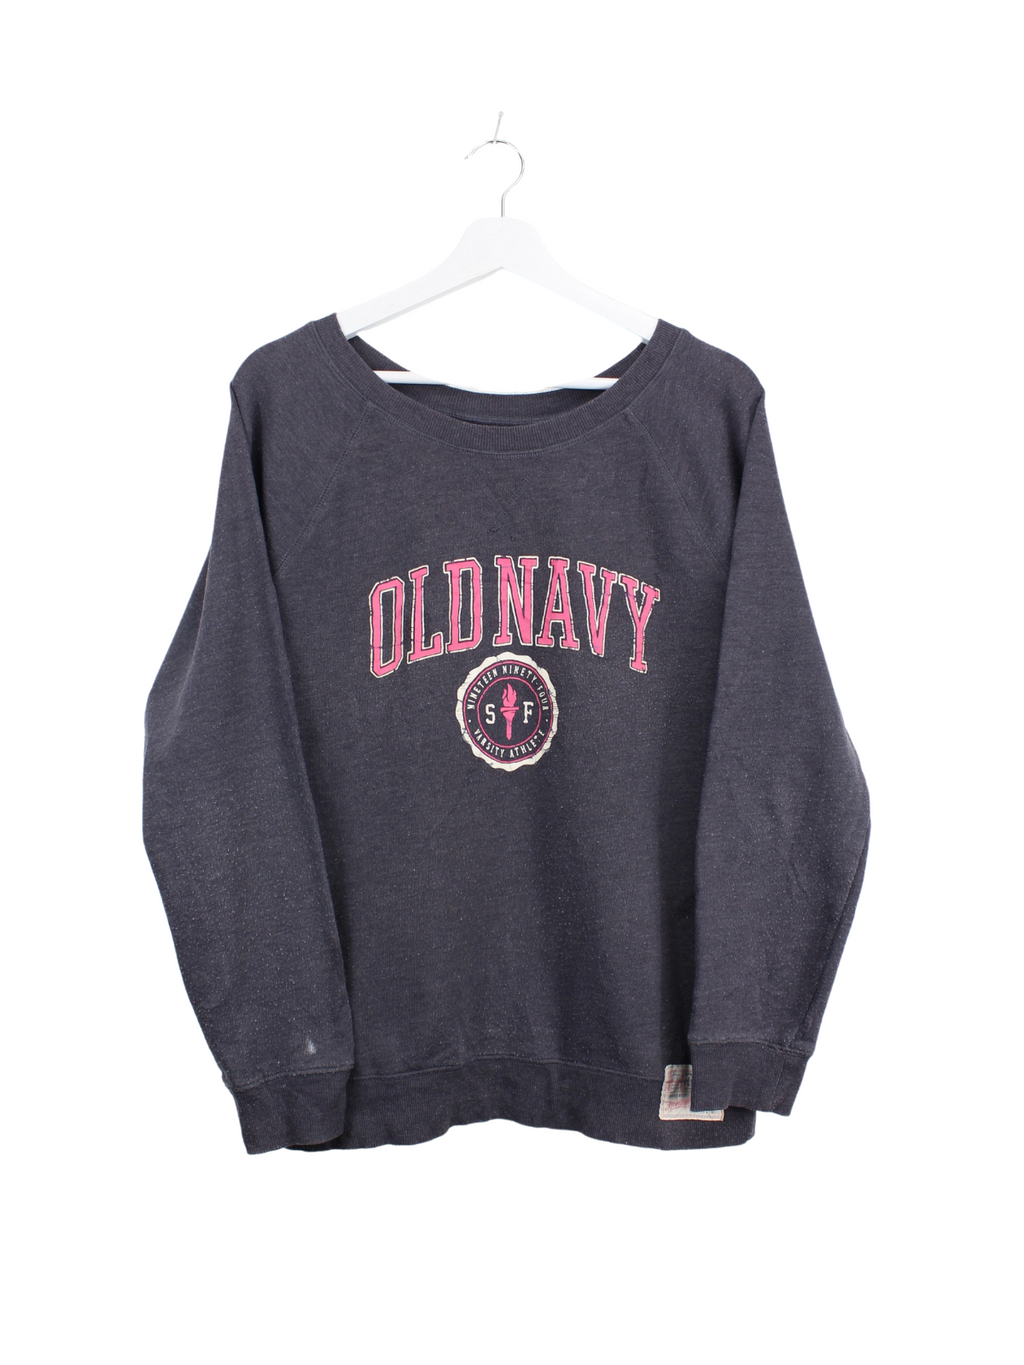 Old Navy Damen Sweater Grau M